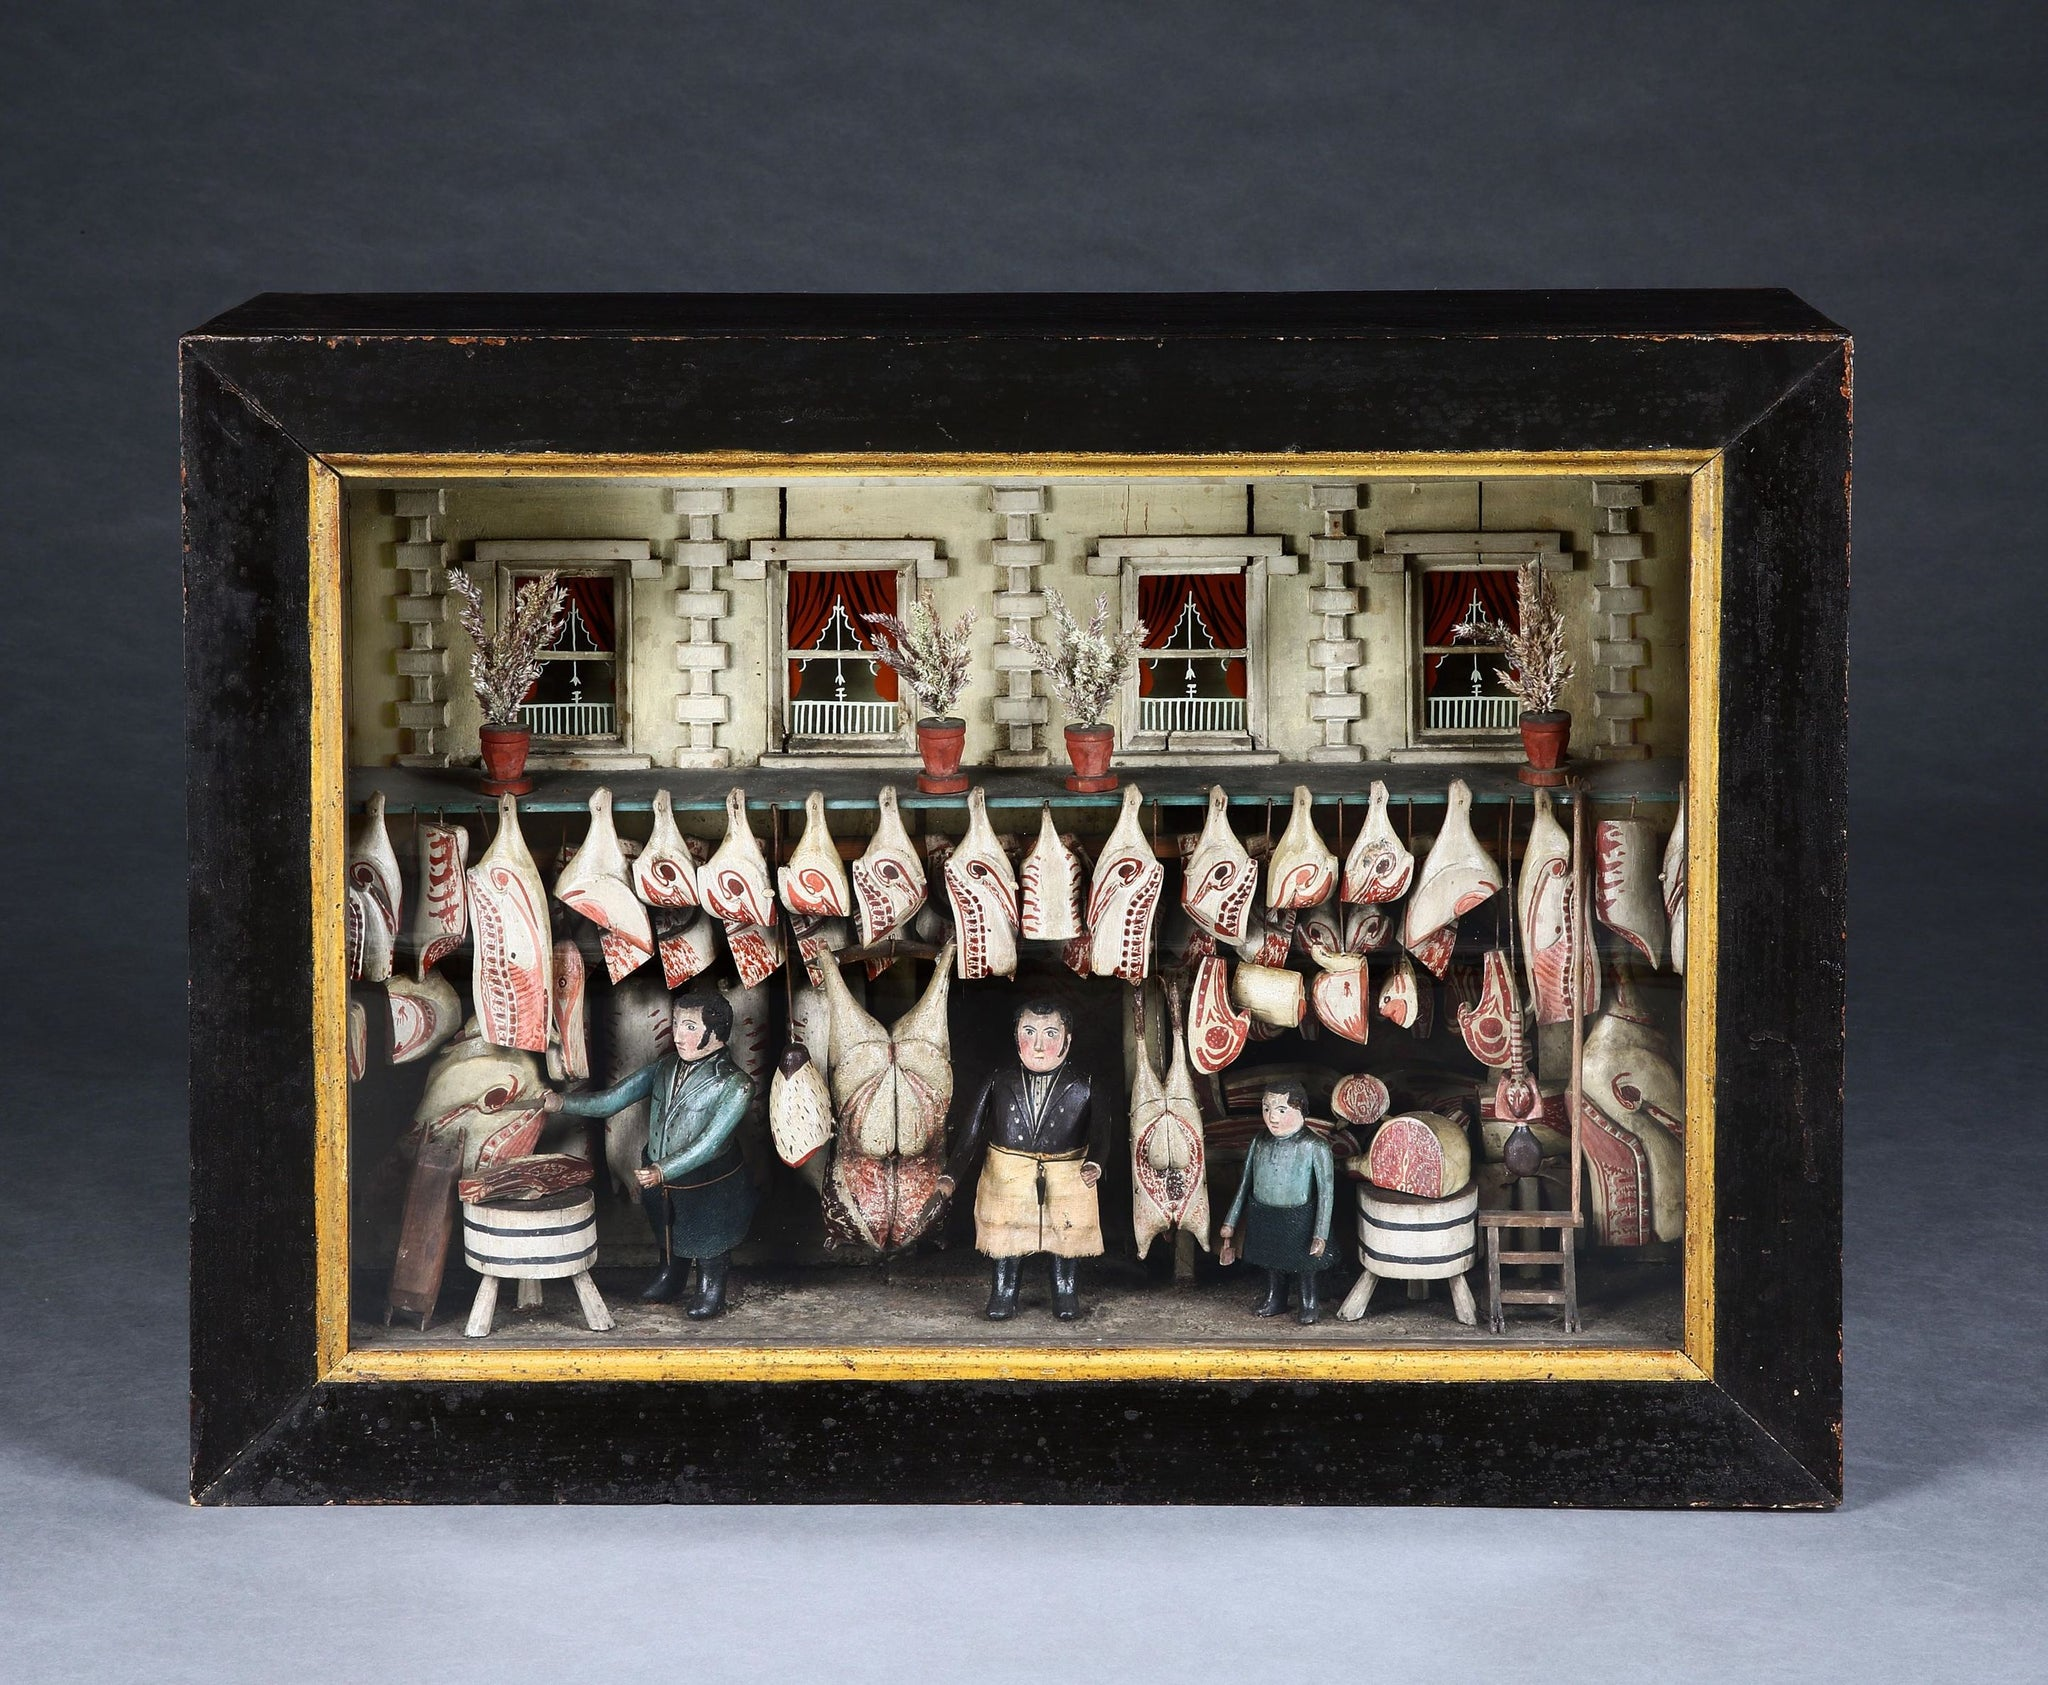 Iconic British Folk Art Butcher's Shop Diorama